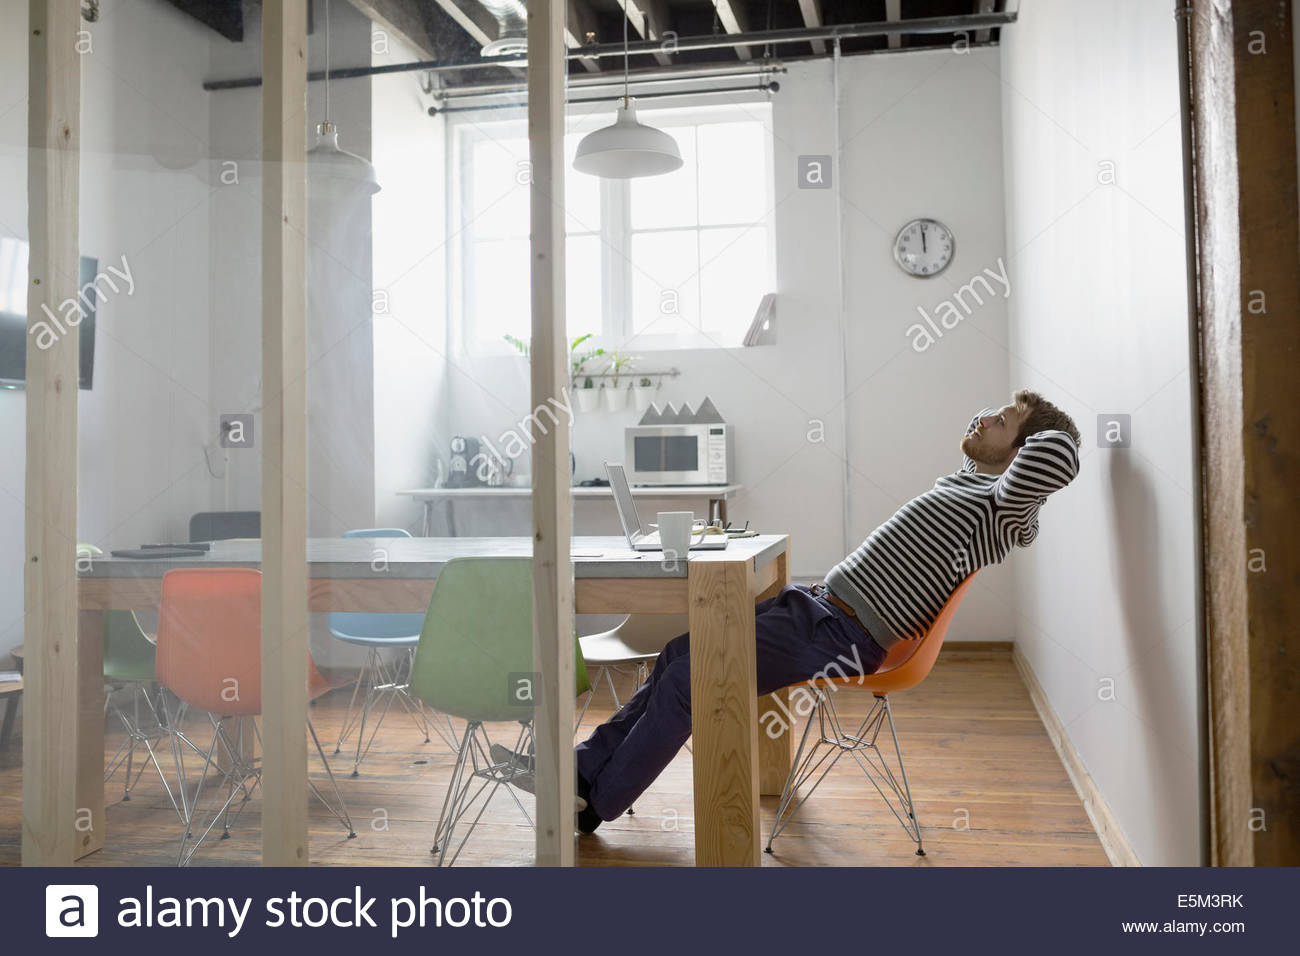 Businessman leaning back in chair in office - Stock Image